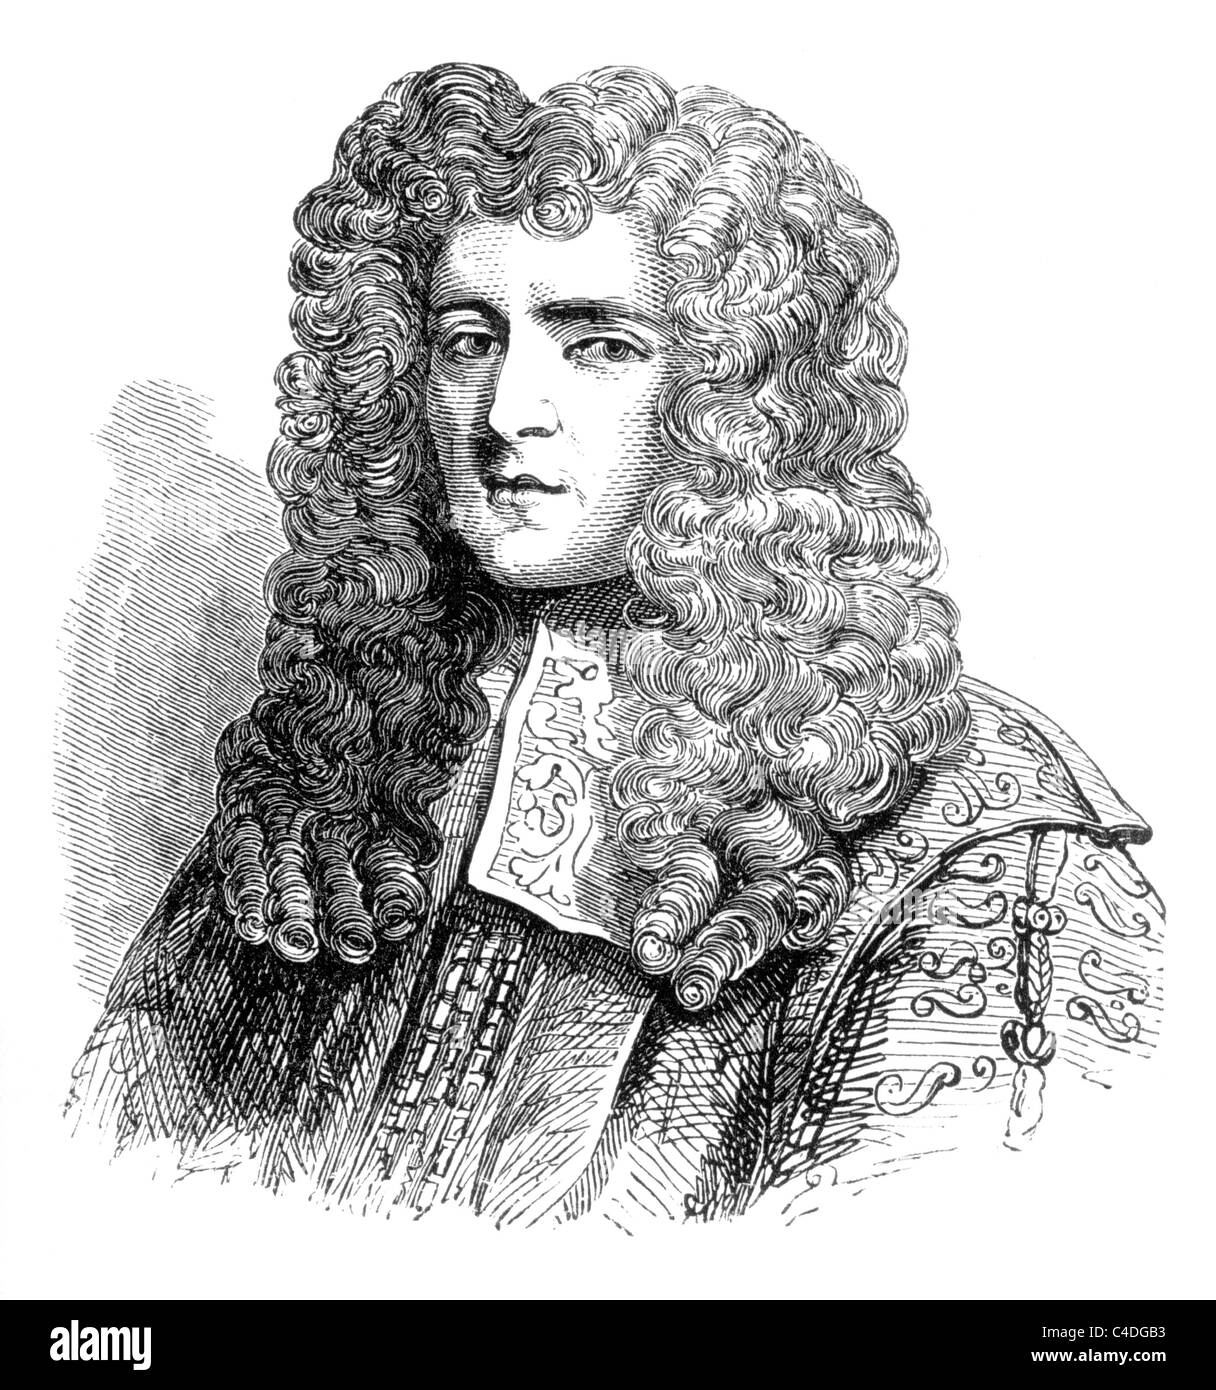 Anthony Ashley Cooper, 1st Earl of Shaftesbury, English Politician and founder of the Whig Party; Black and White - Stock Image